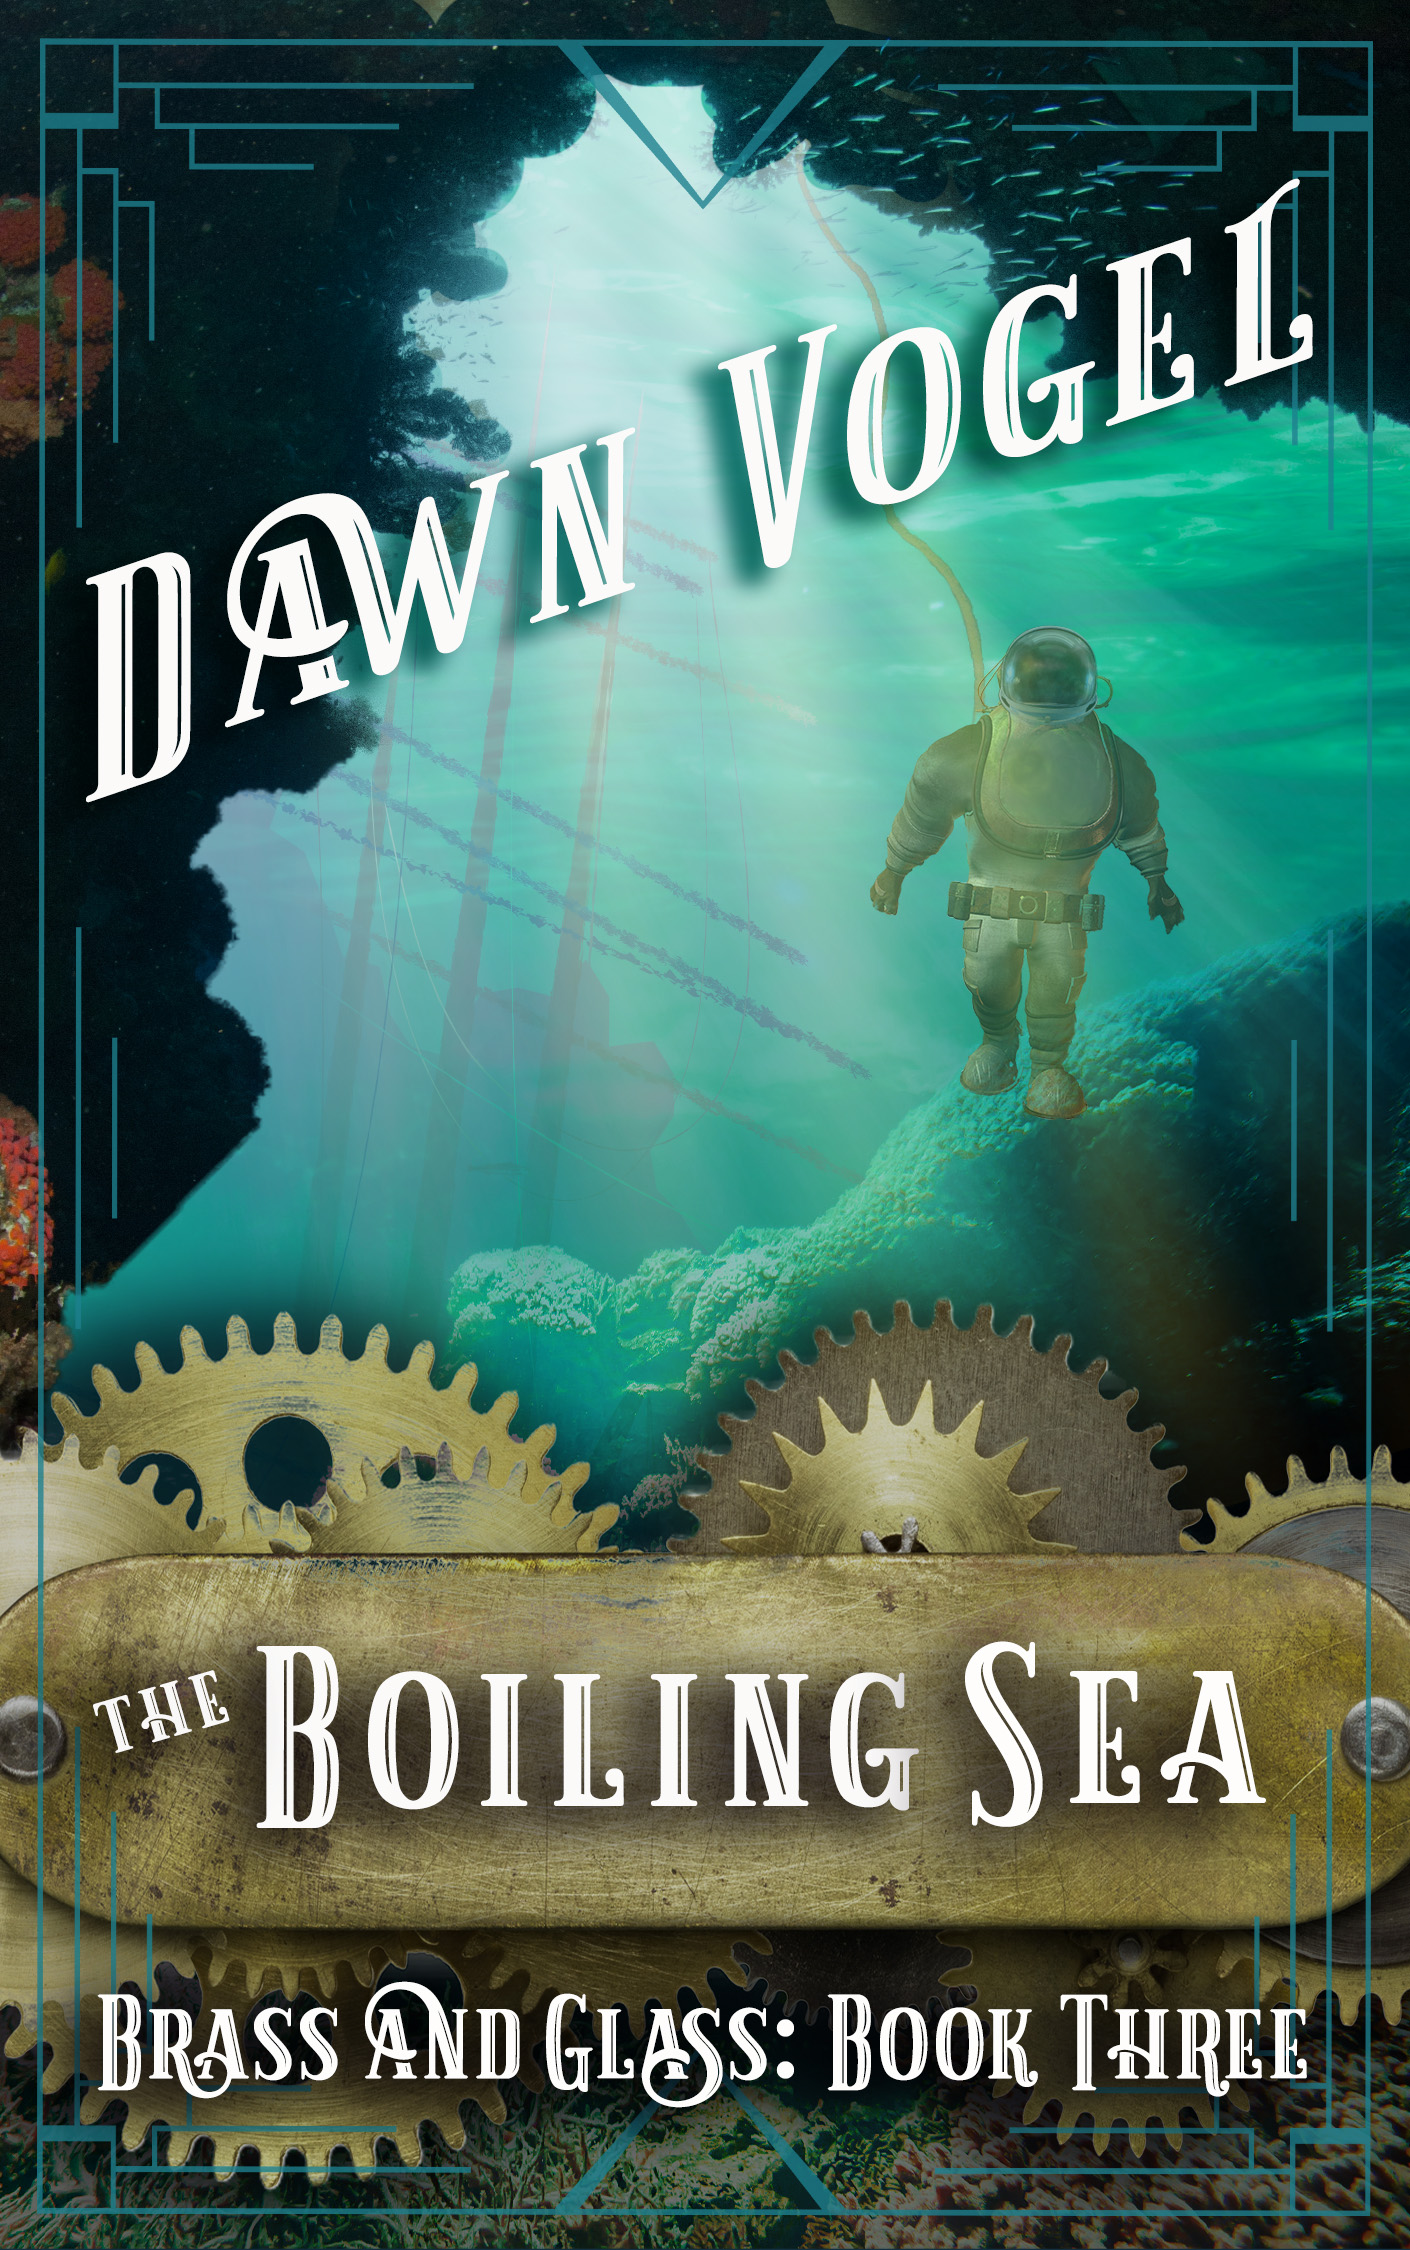 The Boiling Sea cover image